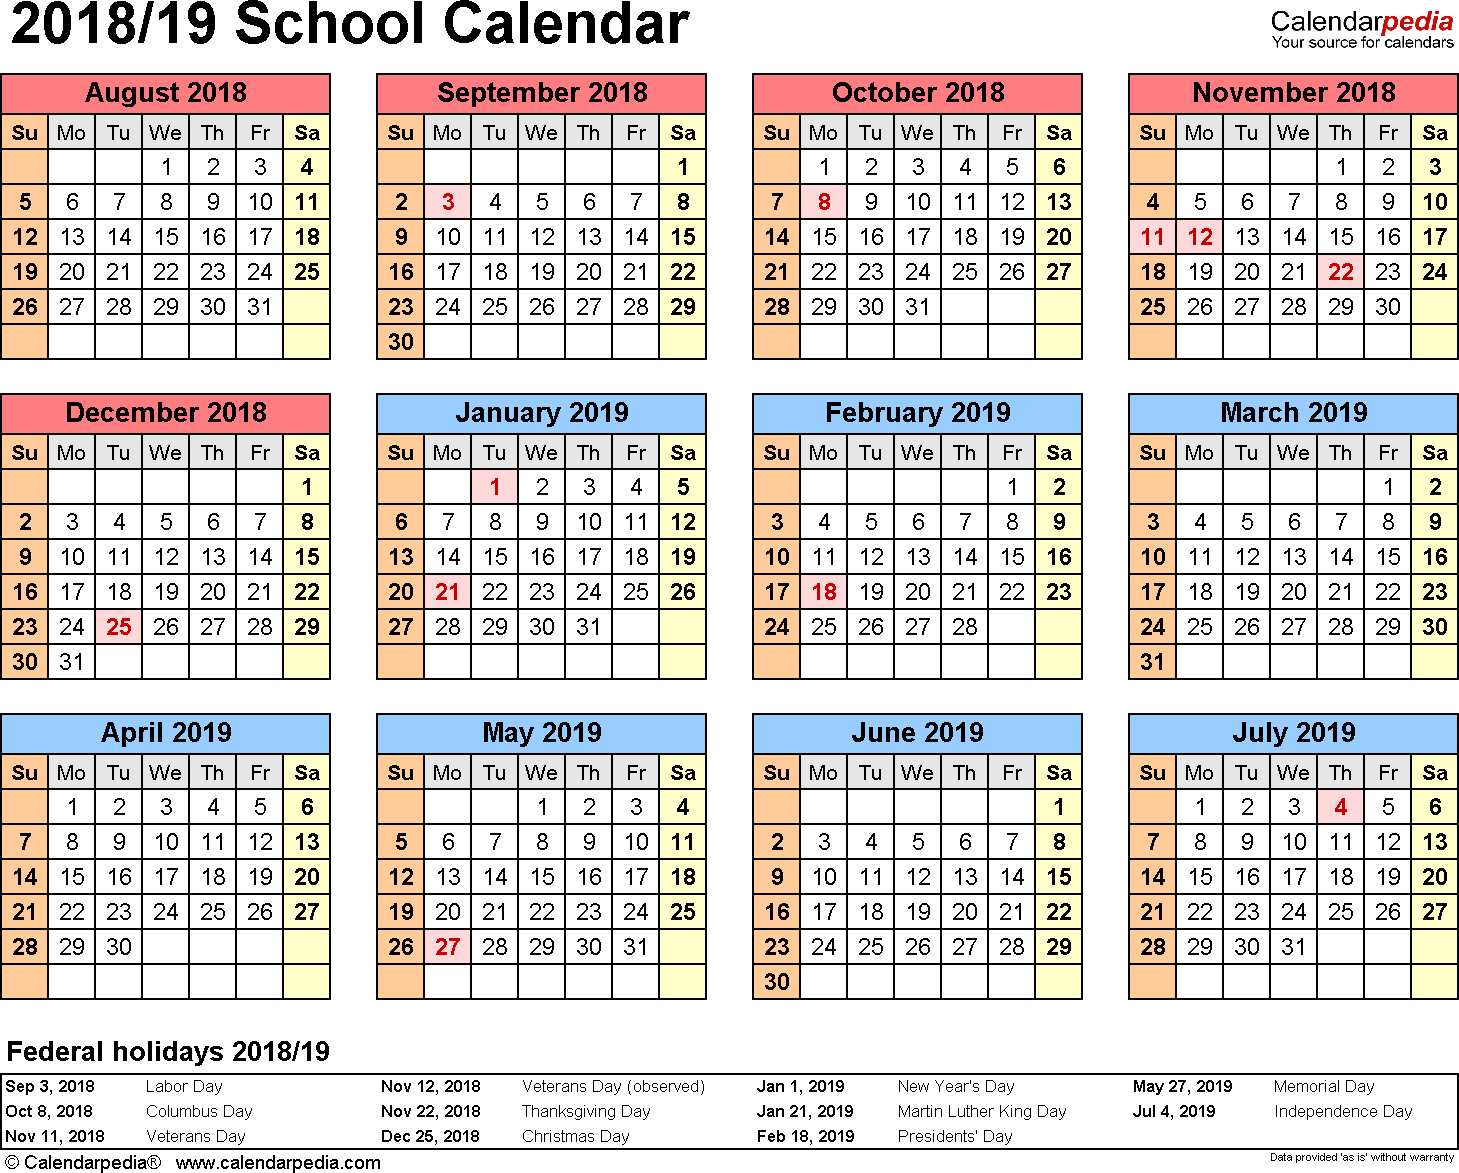 template 4 school calendar 201819 for word landscape orientation year at